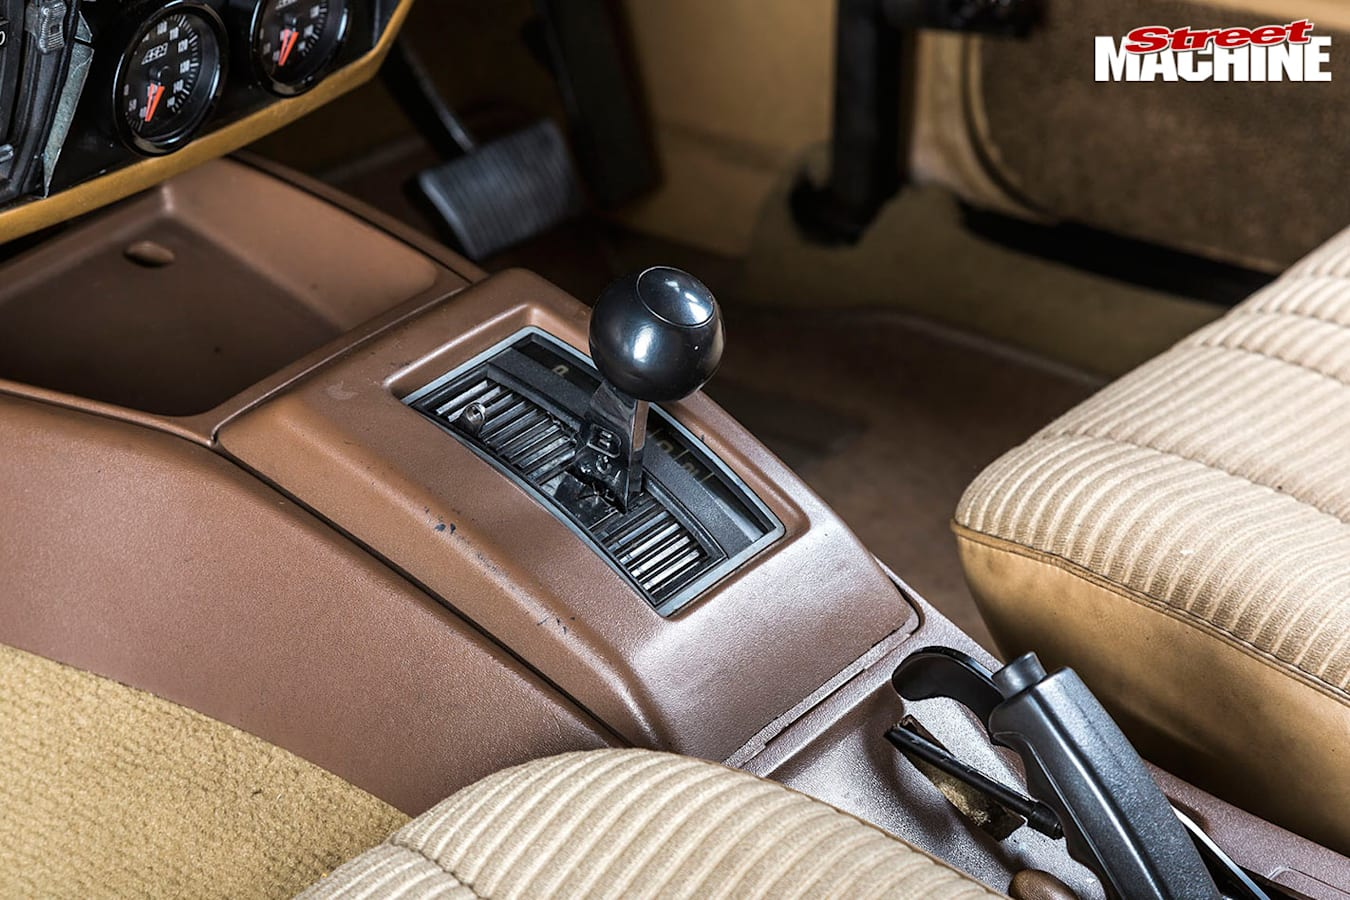 Holden VC Commodore shifter